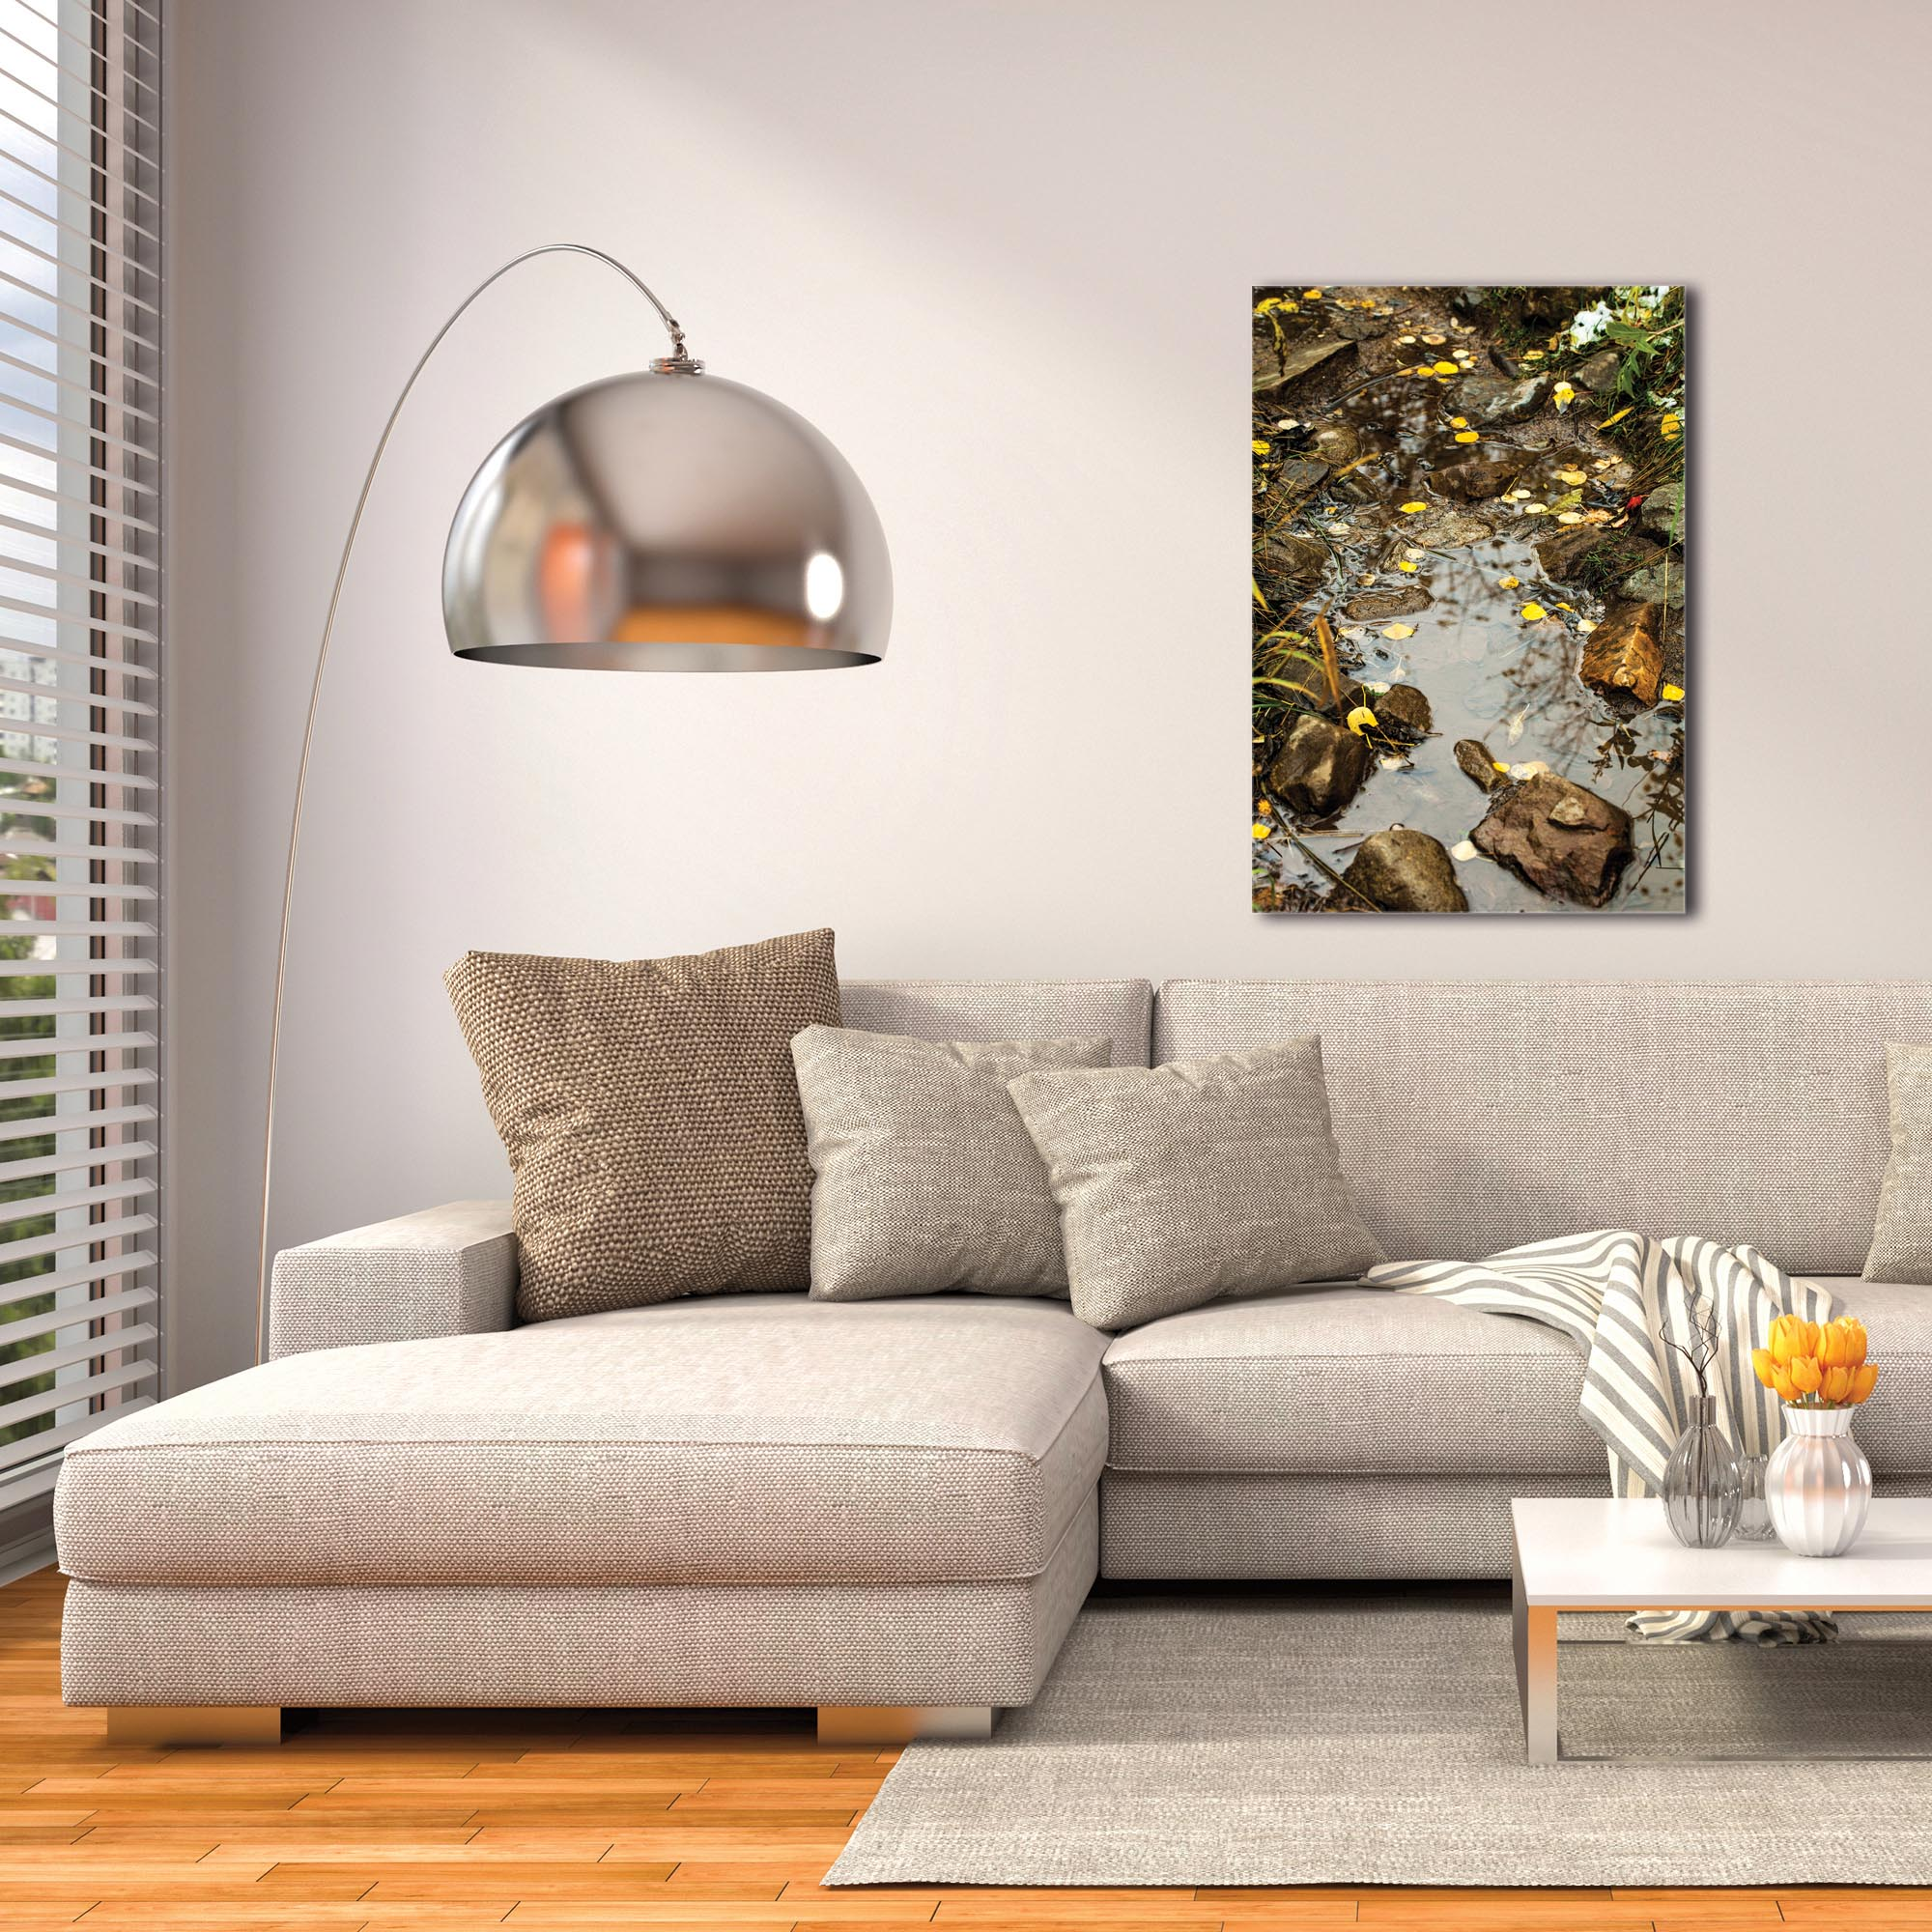 Nature Photography 'Float On' - Autumn Leaves Art on Metal or Plexiglass - Image 3